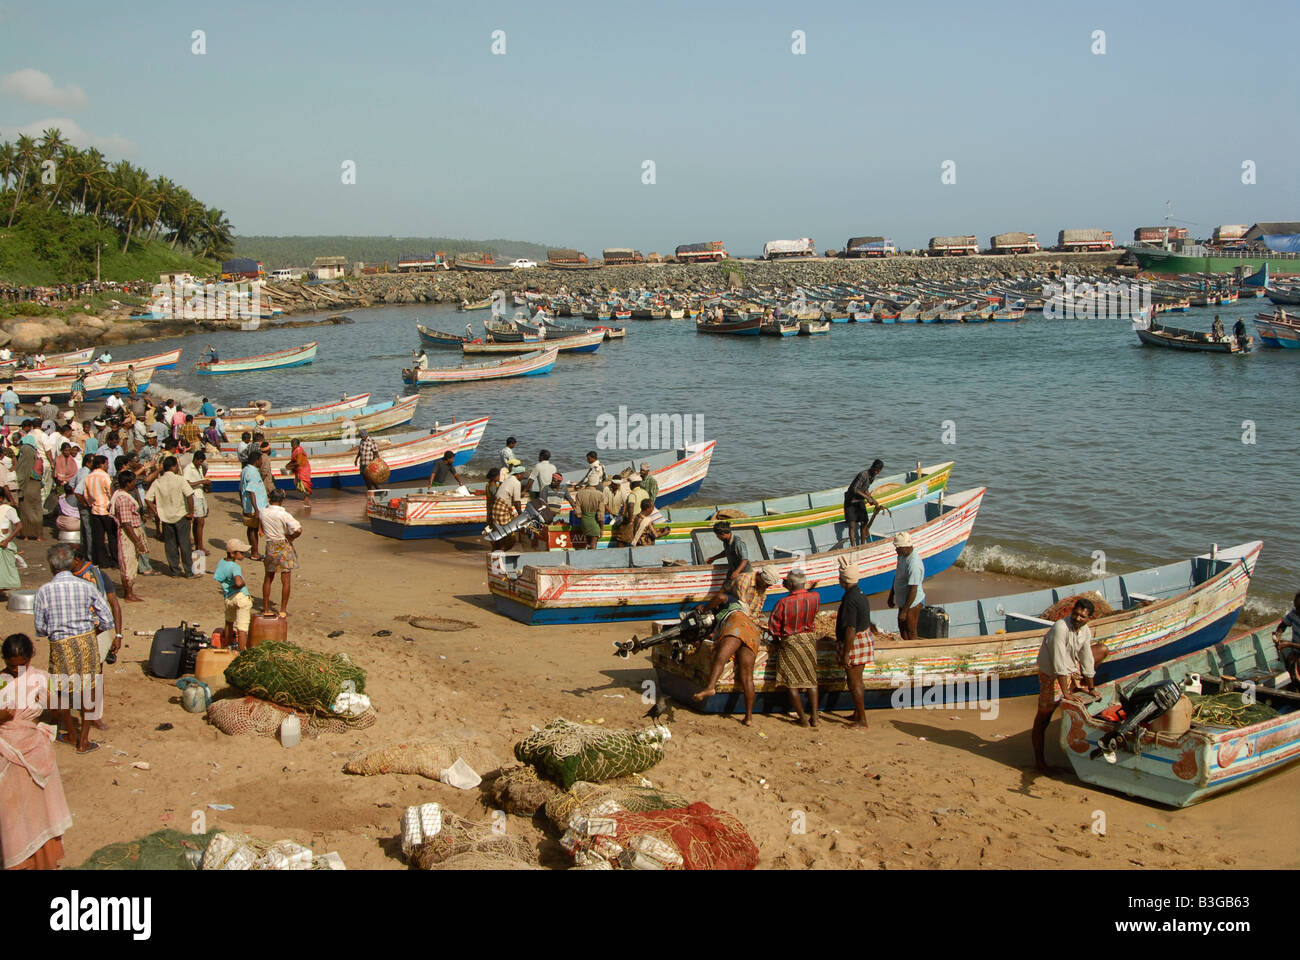 People at Vizhinjam Harbour in Kerala,India - Stock Image